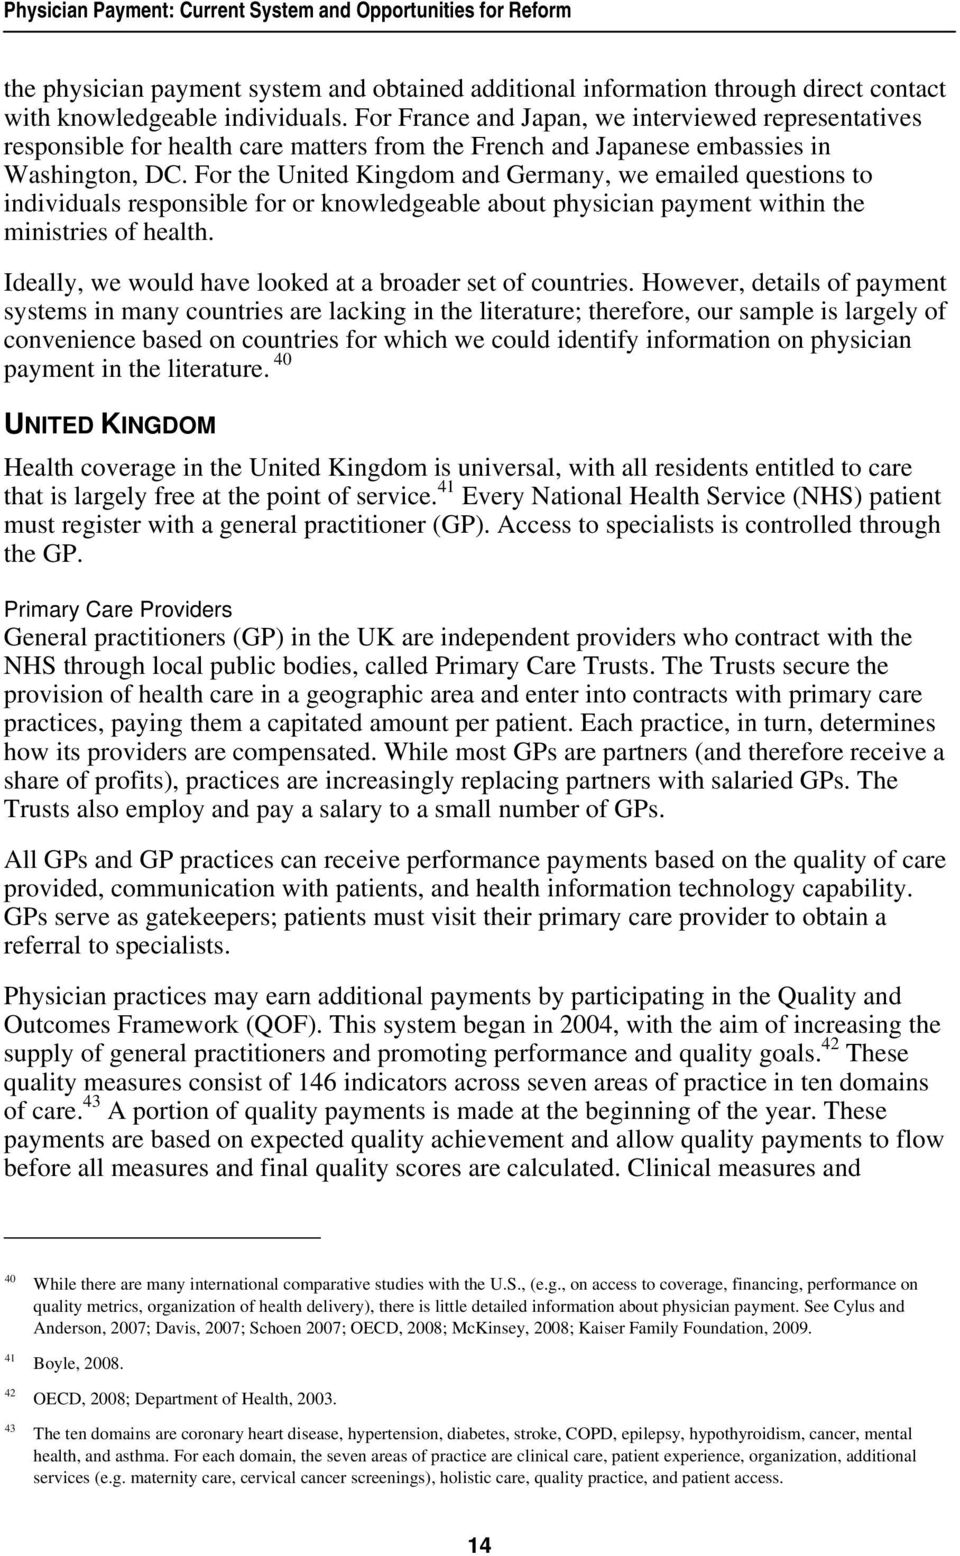 For the United Kingdom and Germany, we emailed questions to individuals responsible for or knowledgeable about physician payment within the ministries of health.